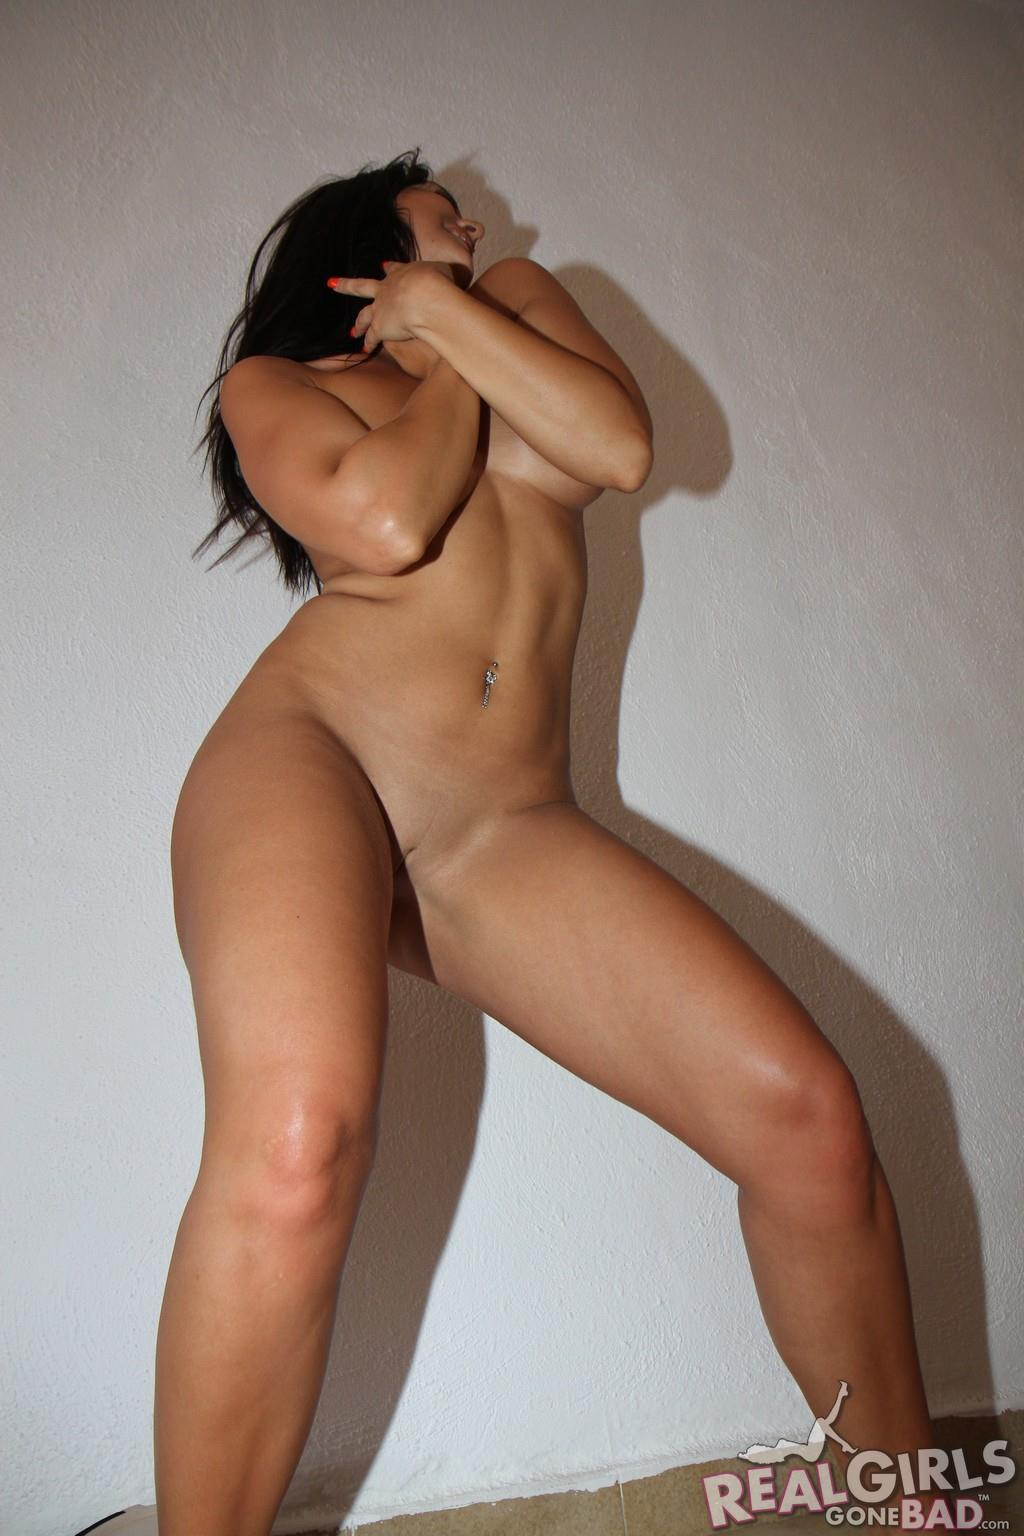 Real girls gone bad nude